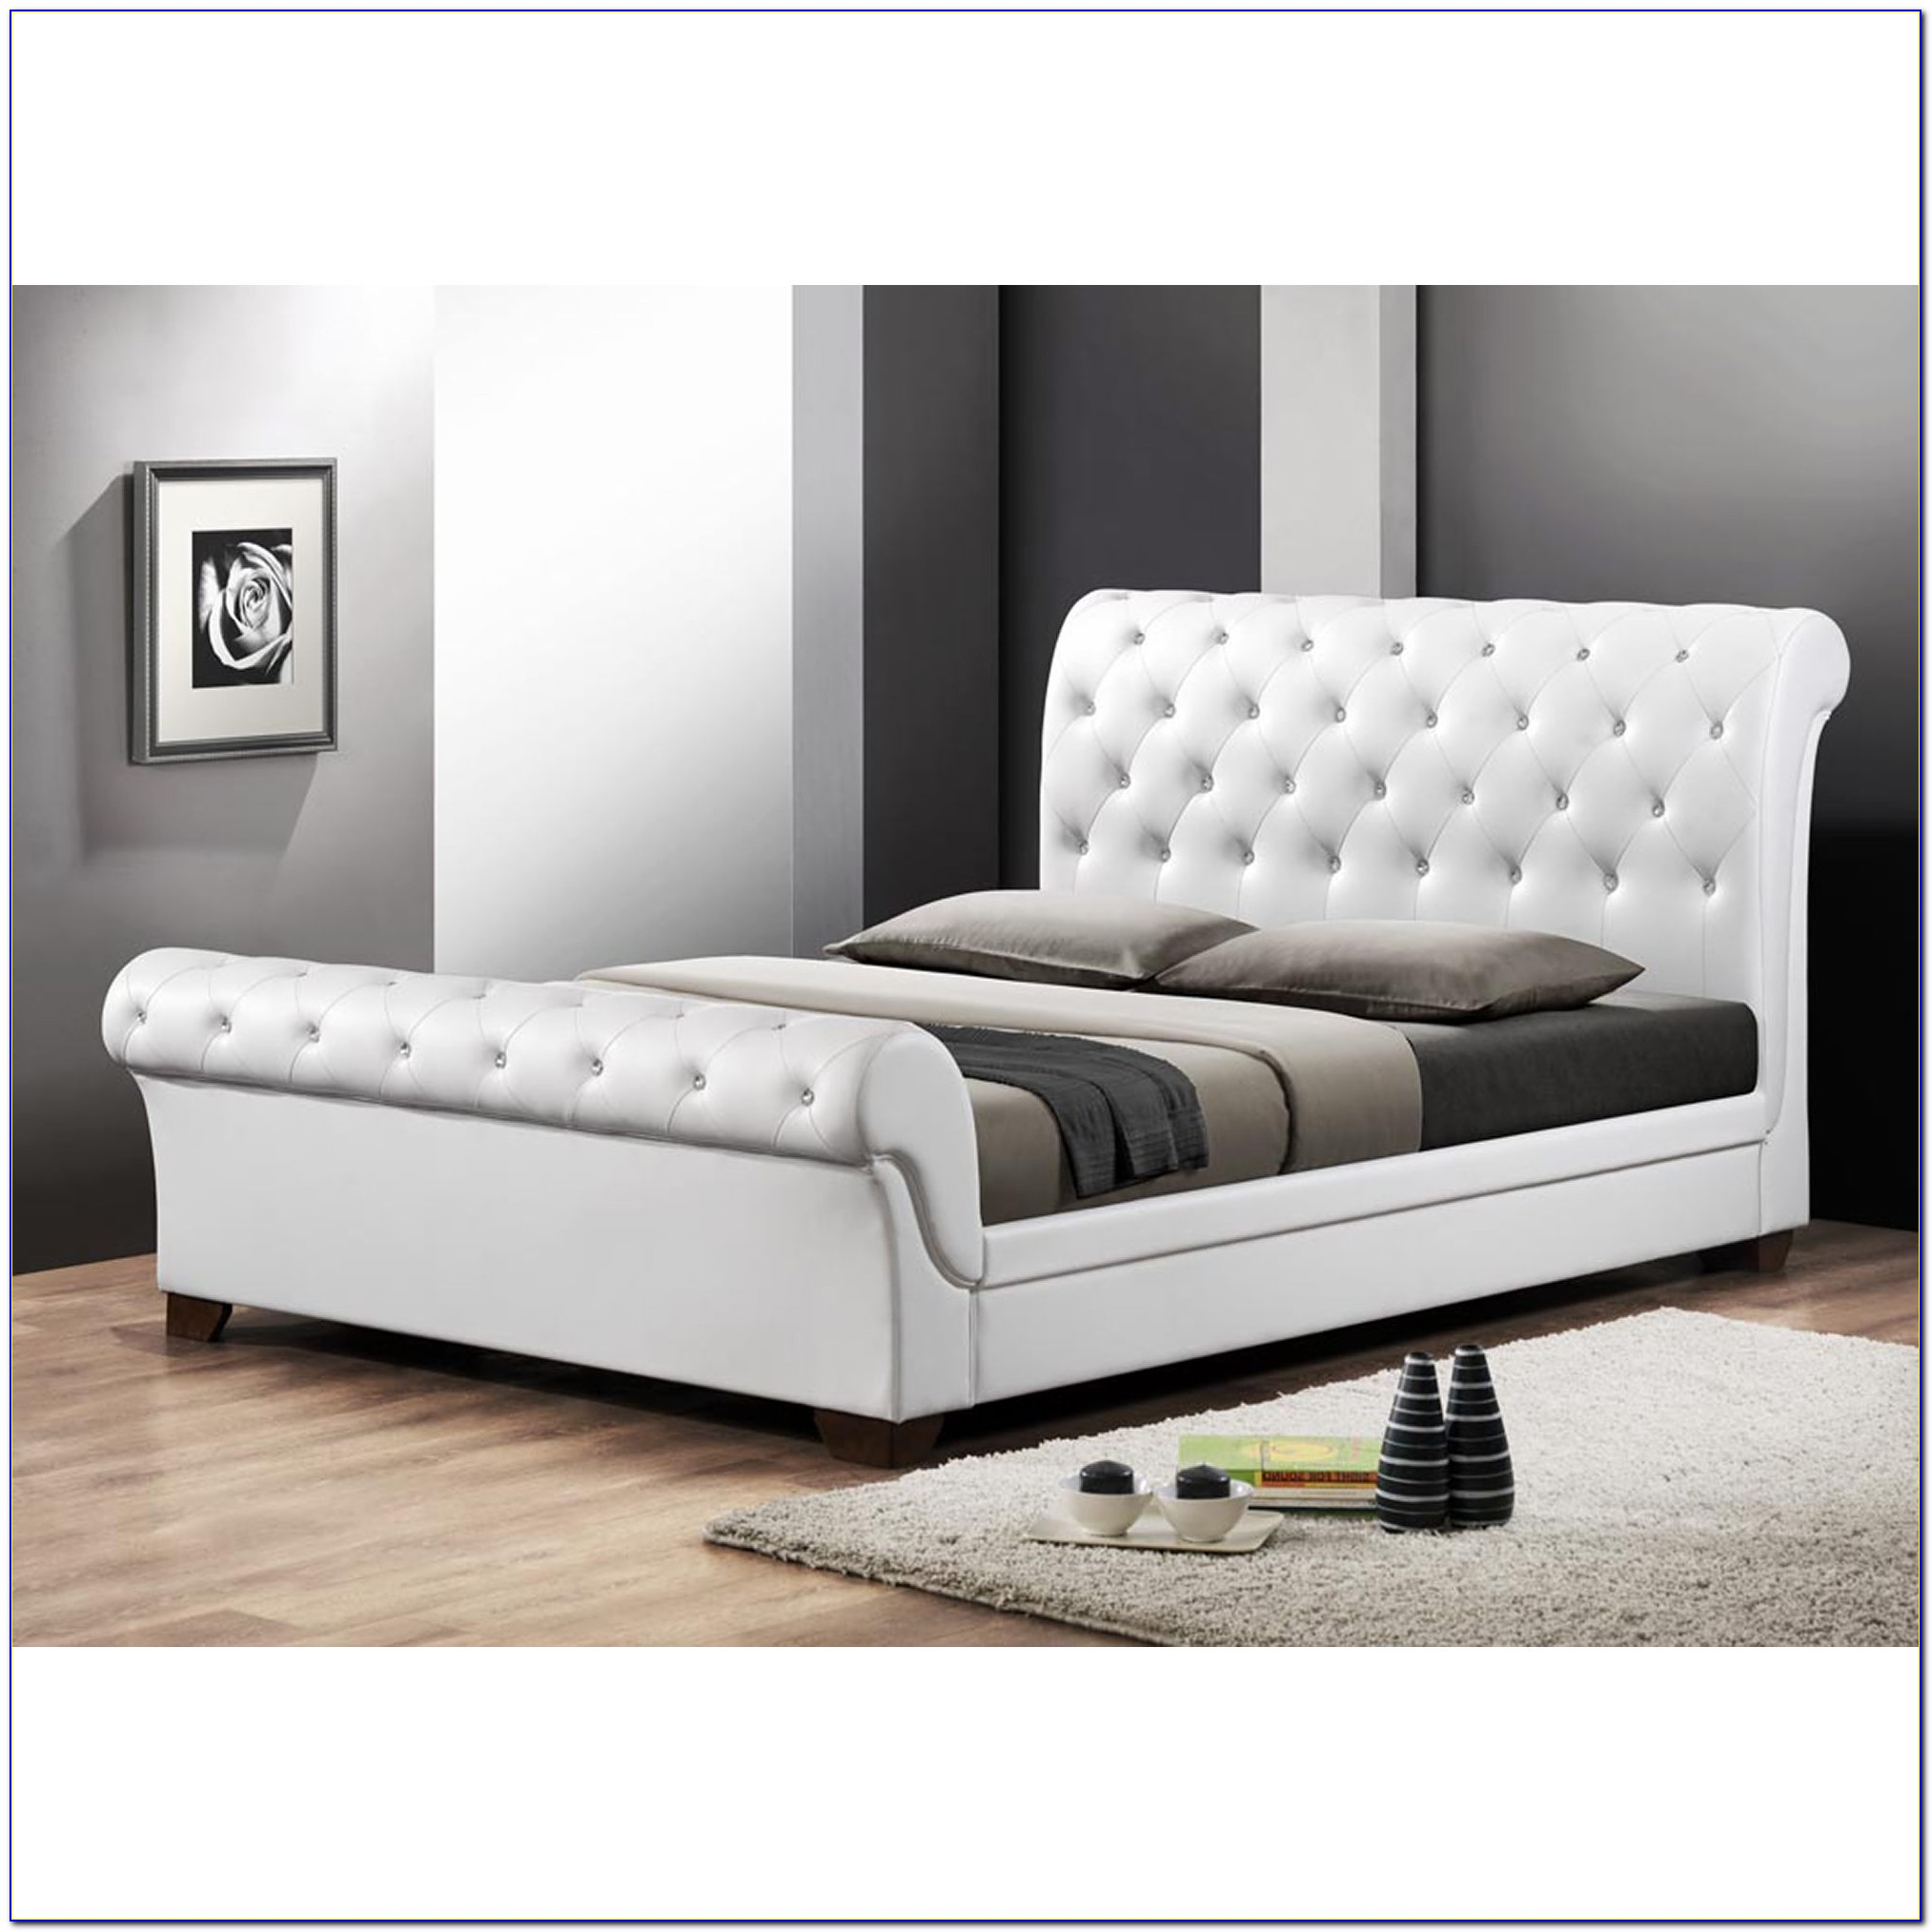 White Upholstered Headboard And Footboard